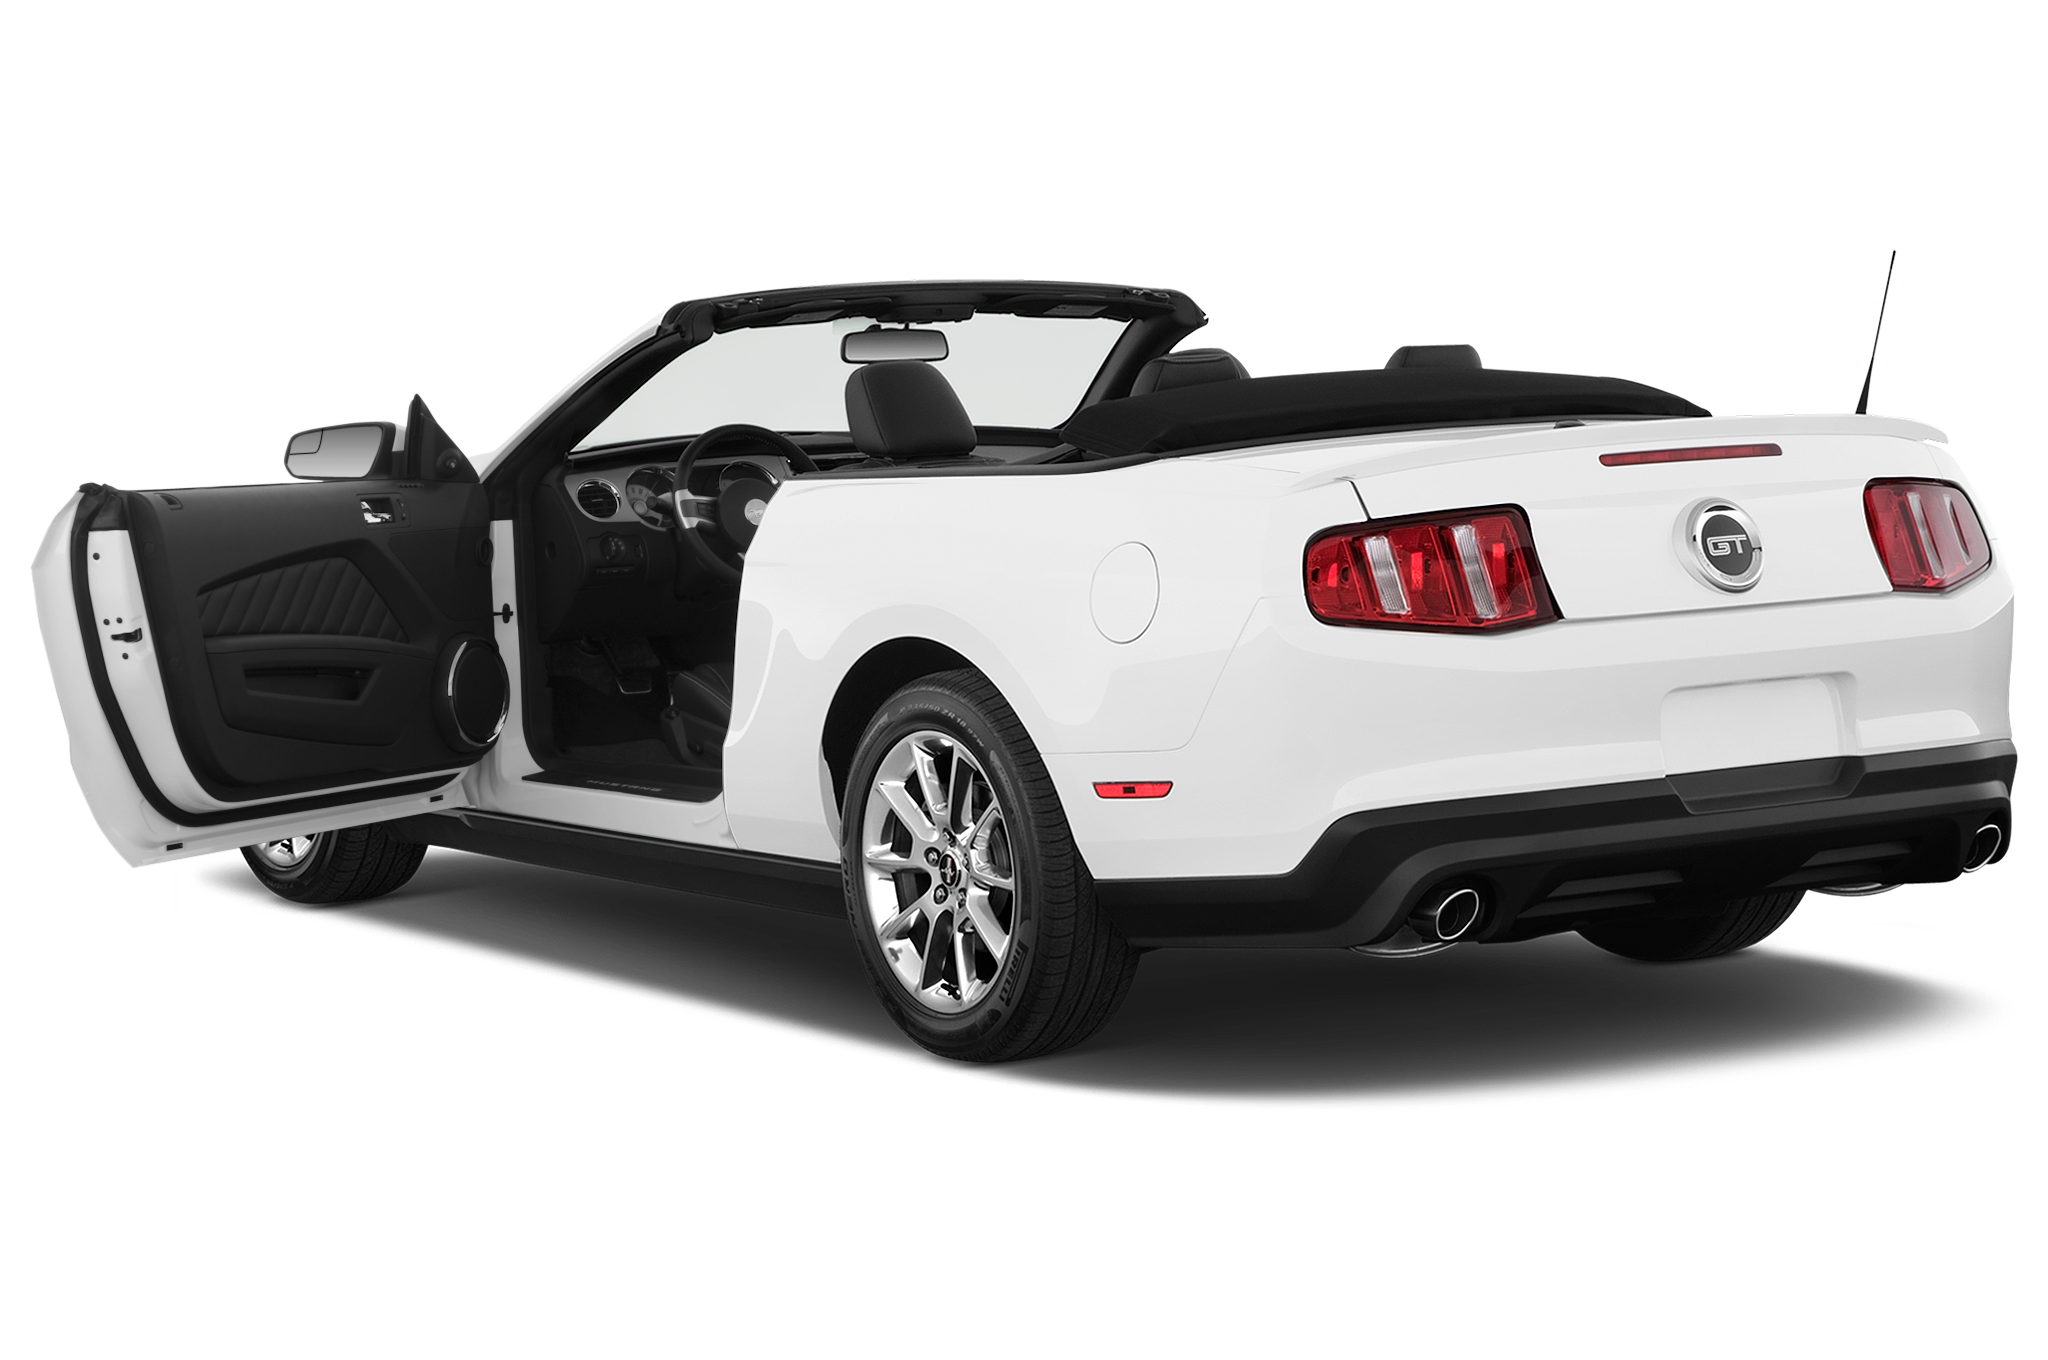 first look 2011 ford mustang v 6 2009 la auto show. Black Bedroom Furniture Sets. Home Design Ideas